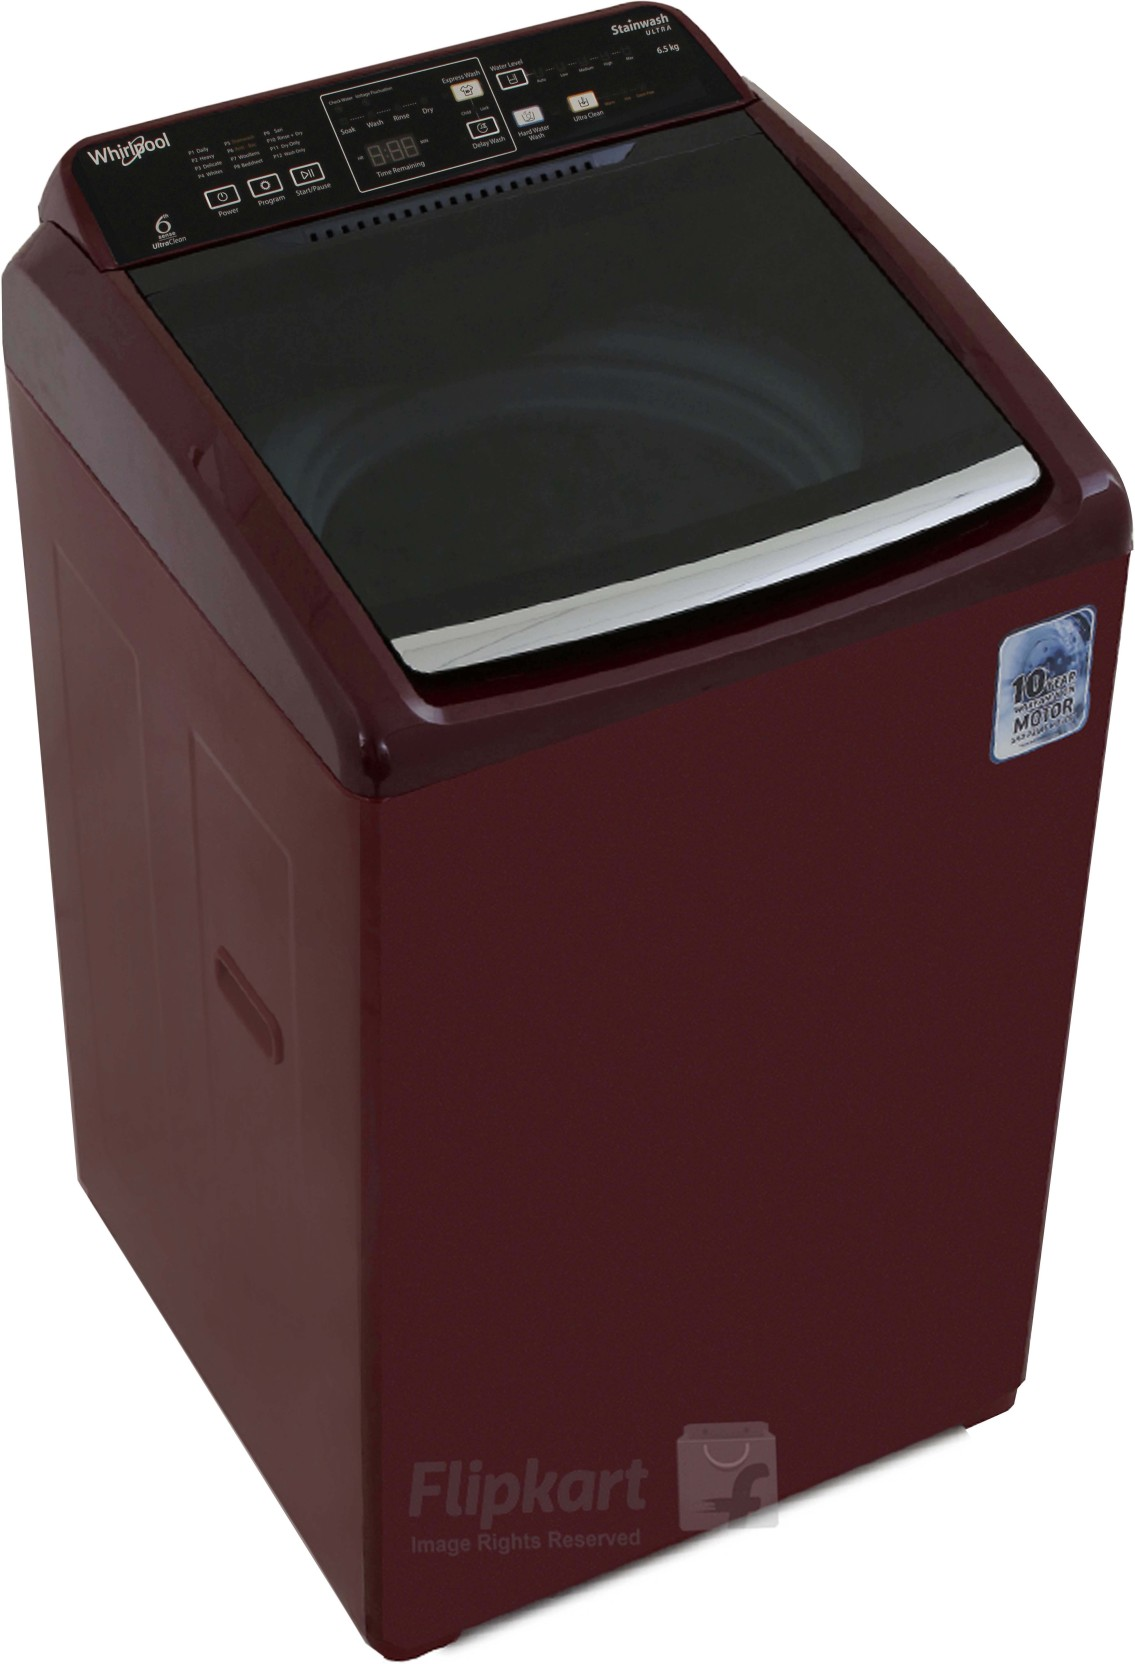 Whirlpool 6.5 kg Fully Automatic Top Load Washing Machine ...